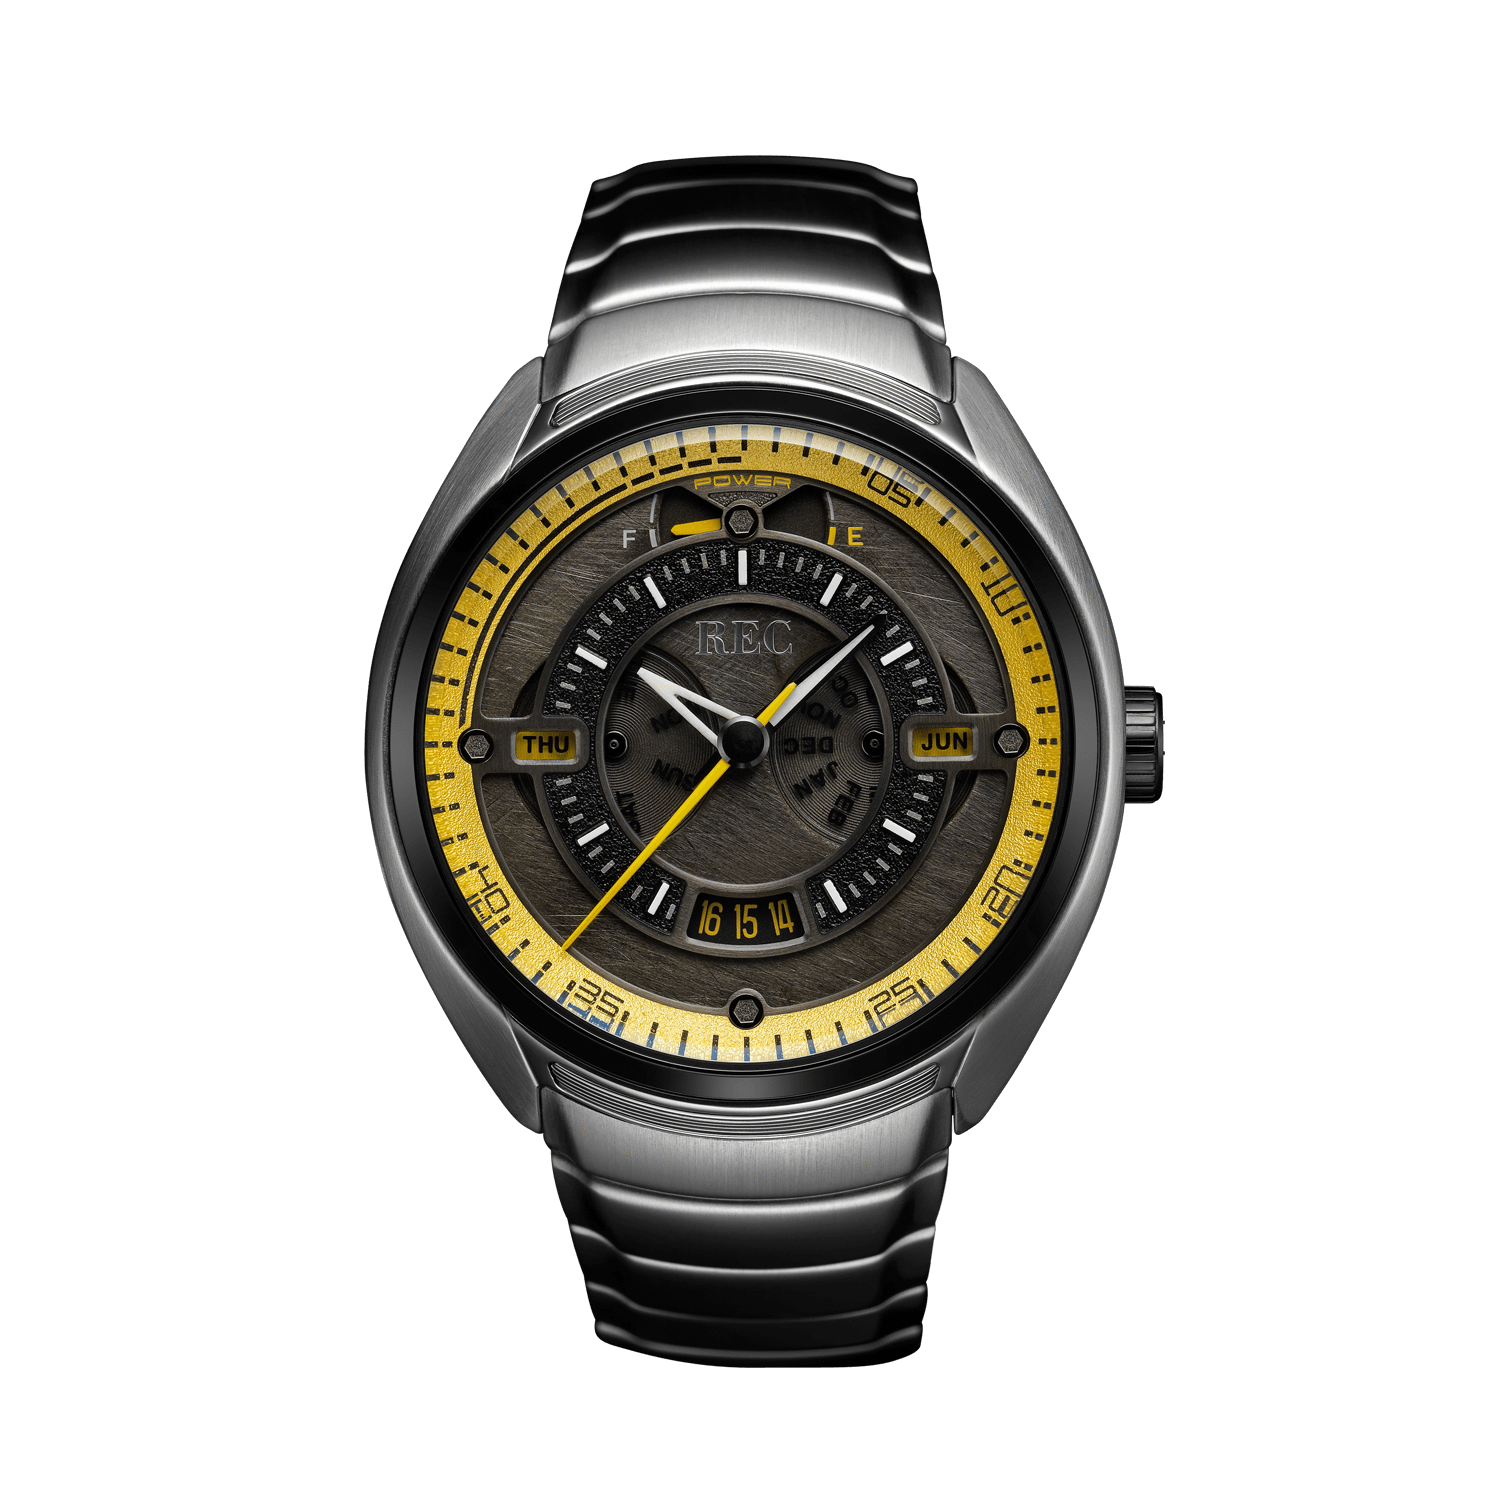 Rec watch Salvaged from Porsche -Limited edition 901-RS  (sold out)